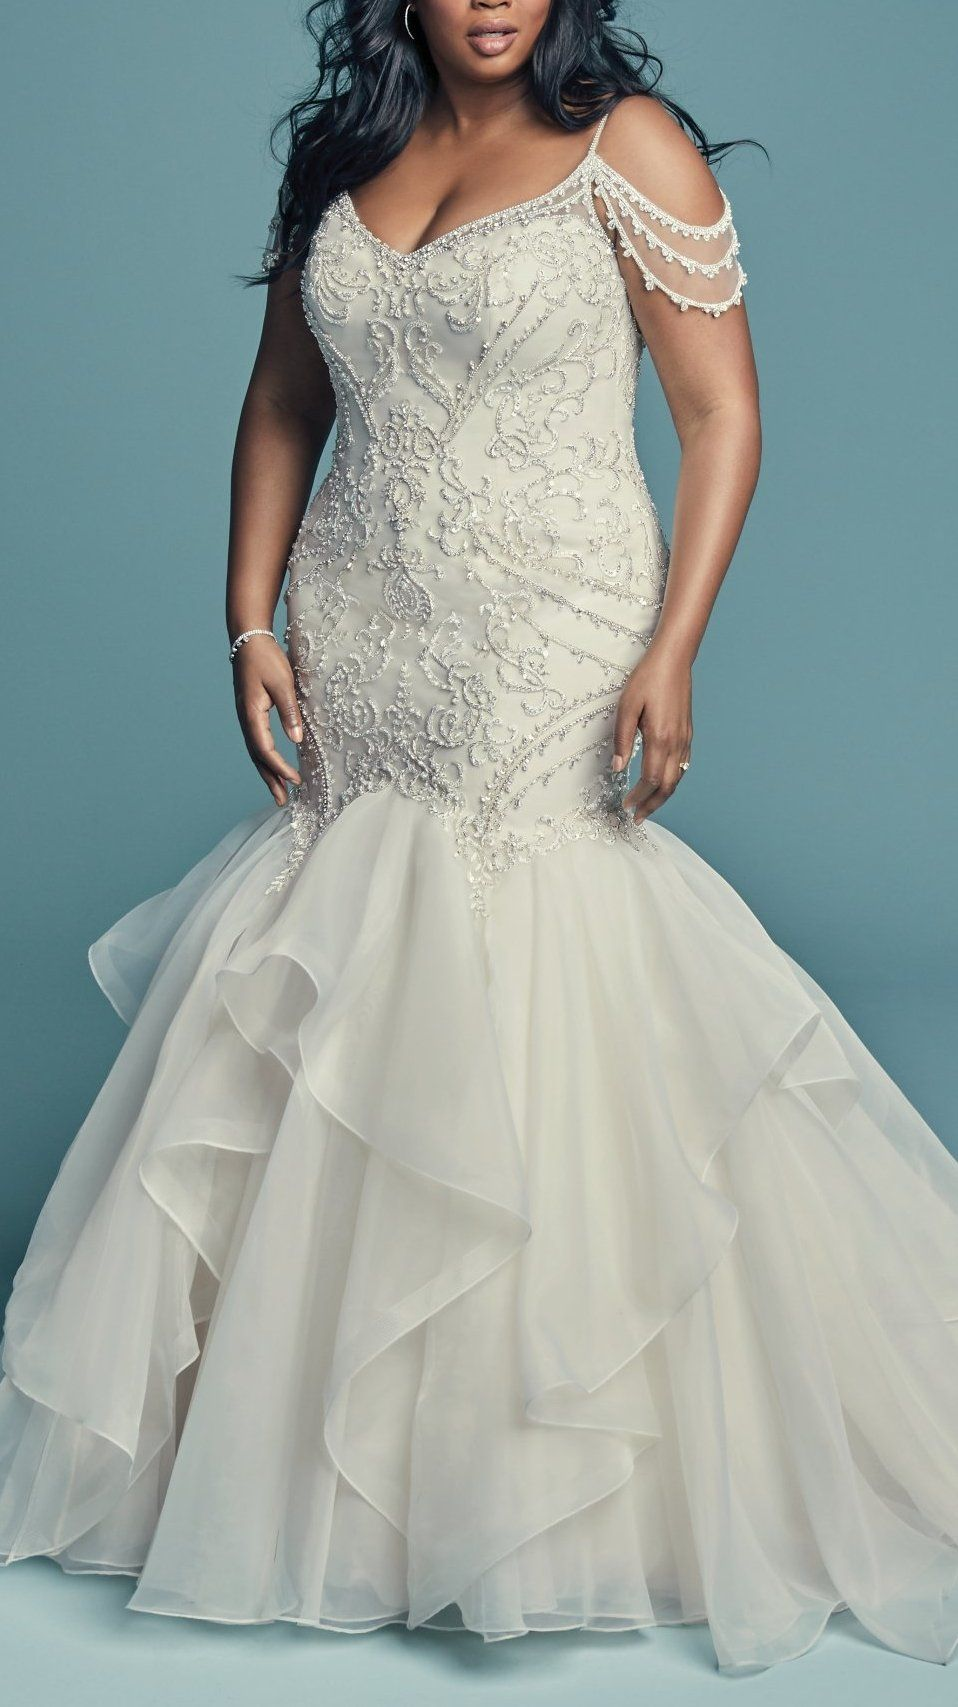 Brinkley Lynette By Maggie Sottero Wedding Dresses And Accessories Wedding Dresses Mermaid Dresses Plus Size Wedding Gowns [ 1707 x 958 Pixel ]